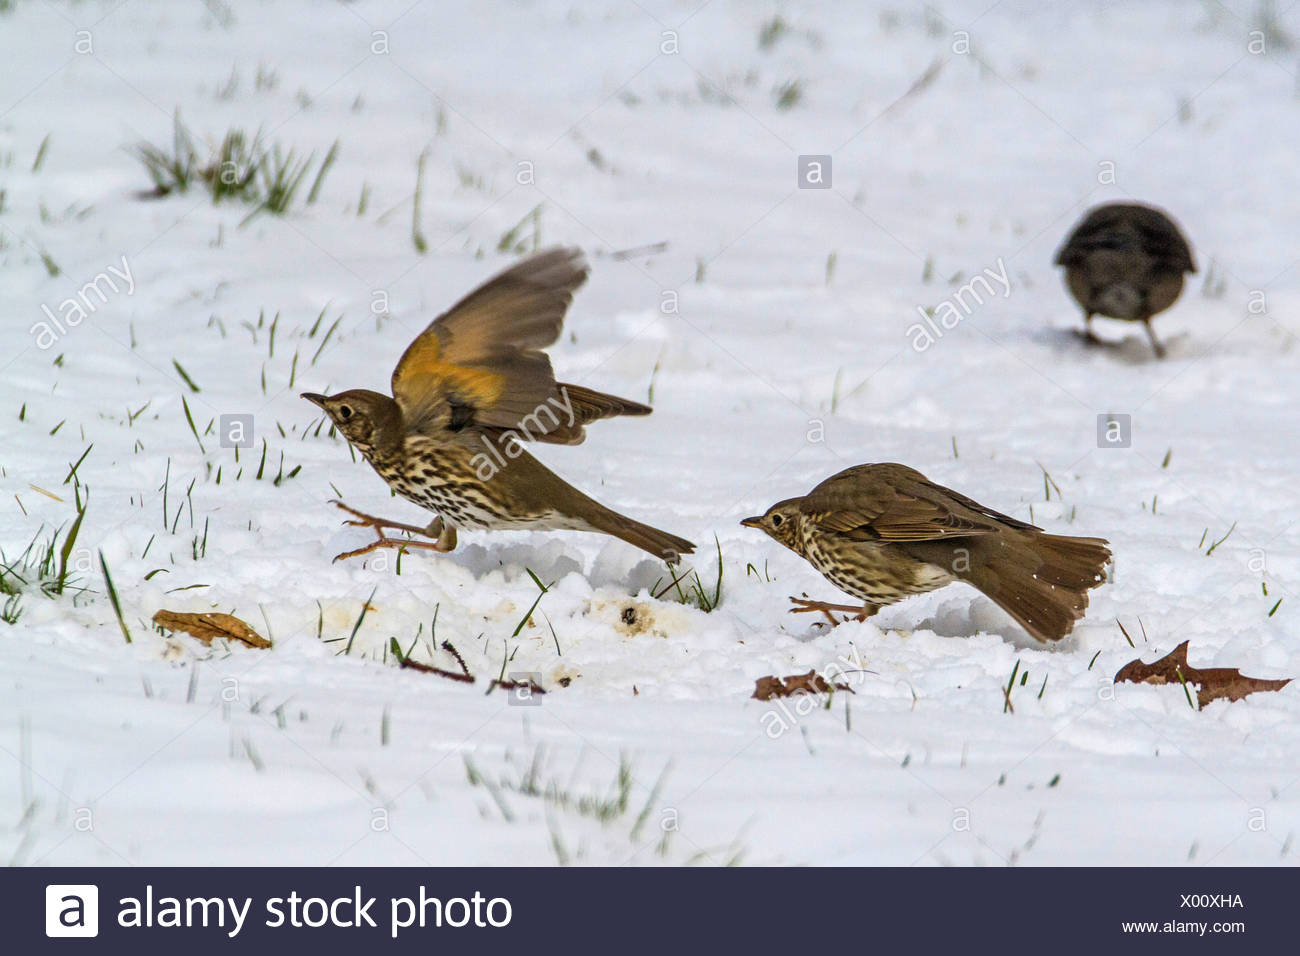 song thrush (Turdus philomelos), disputing on snow covered lawn, Germany, Bavaria - Stock Image